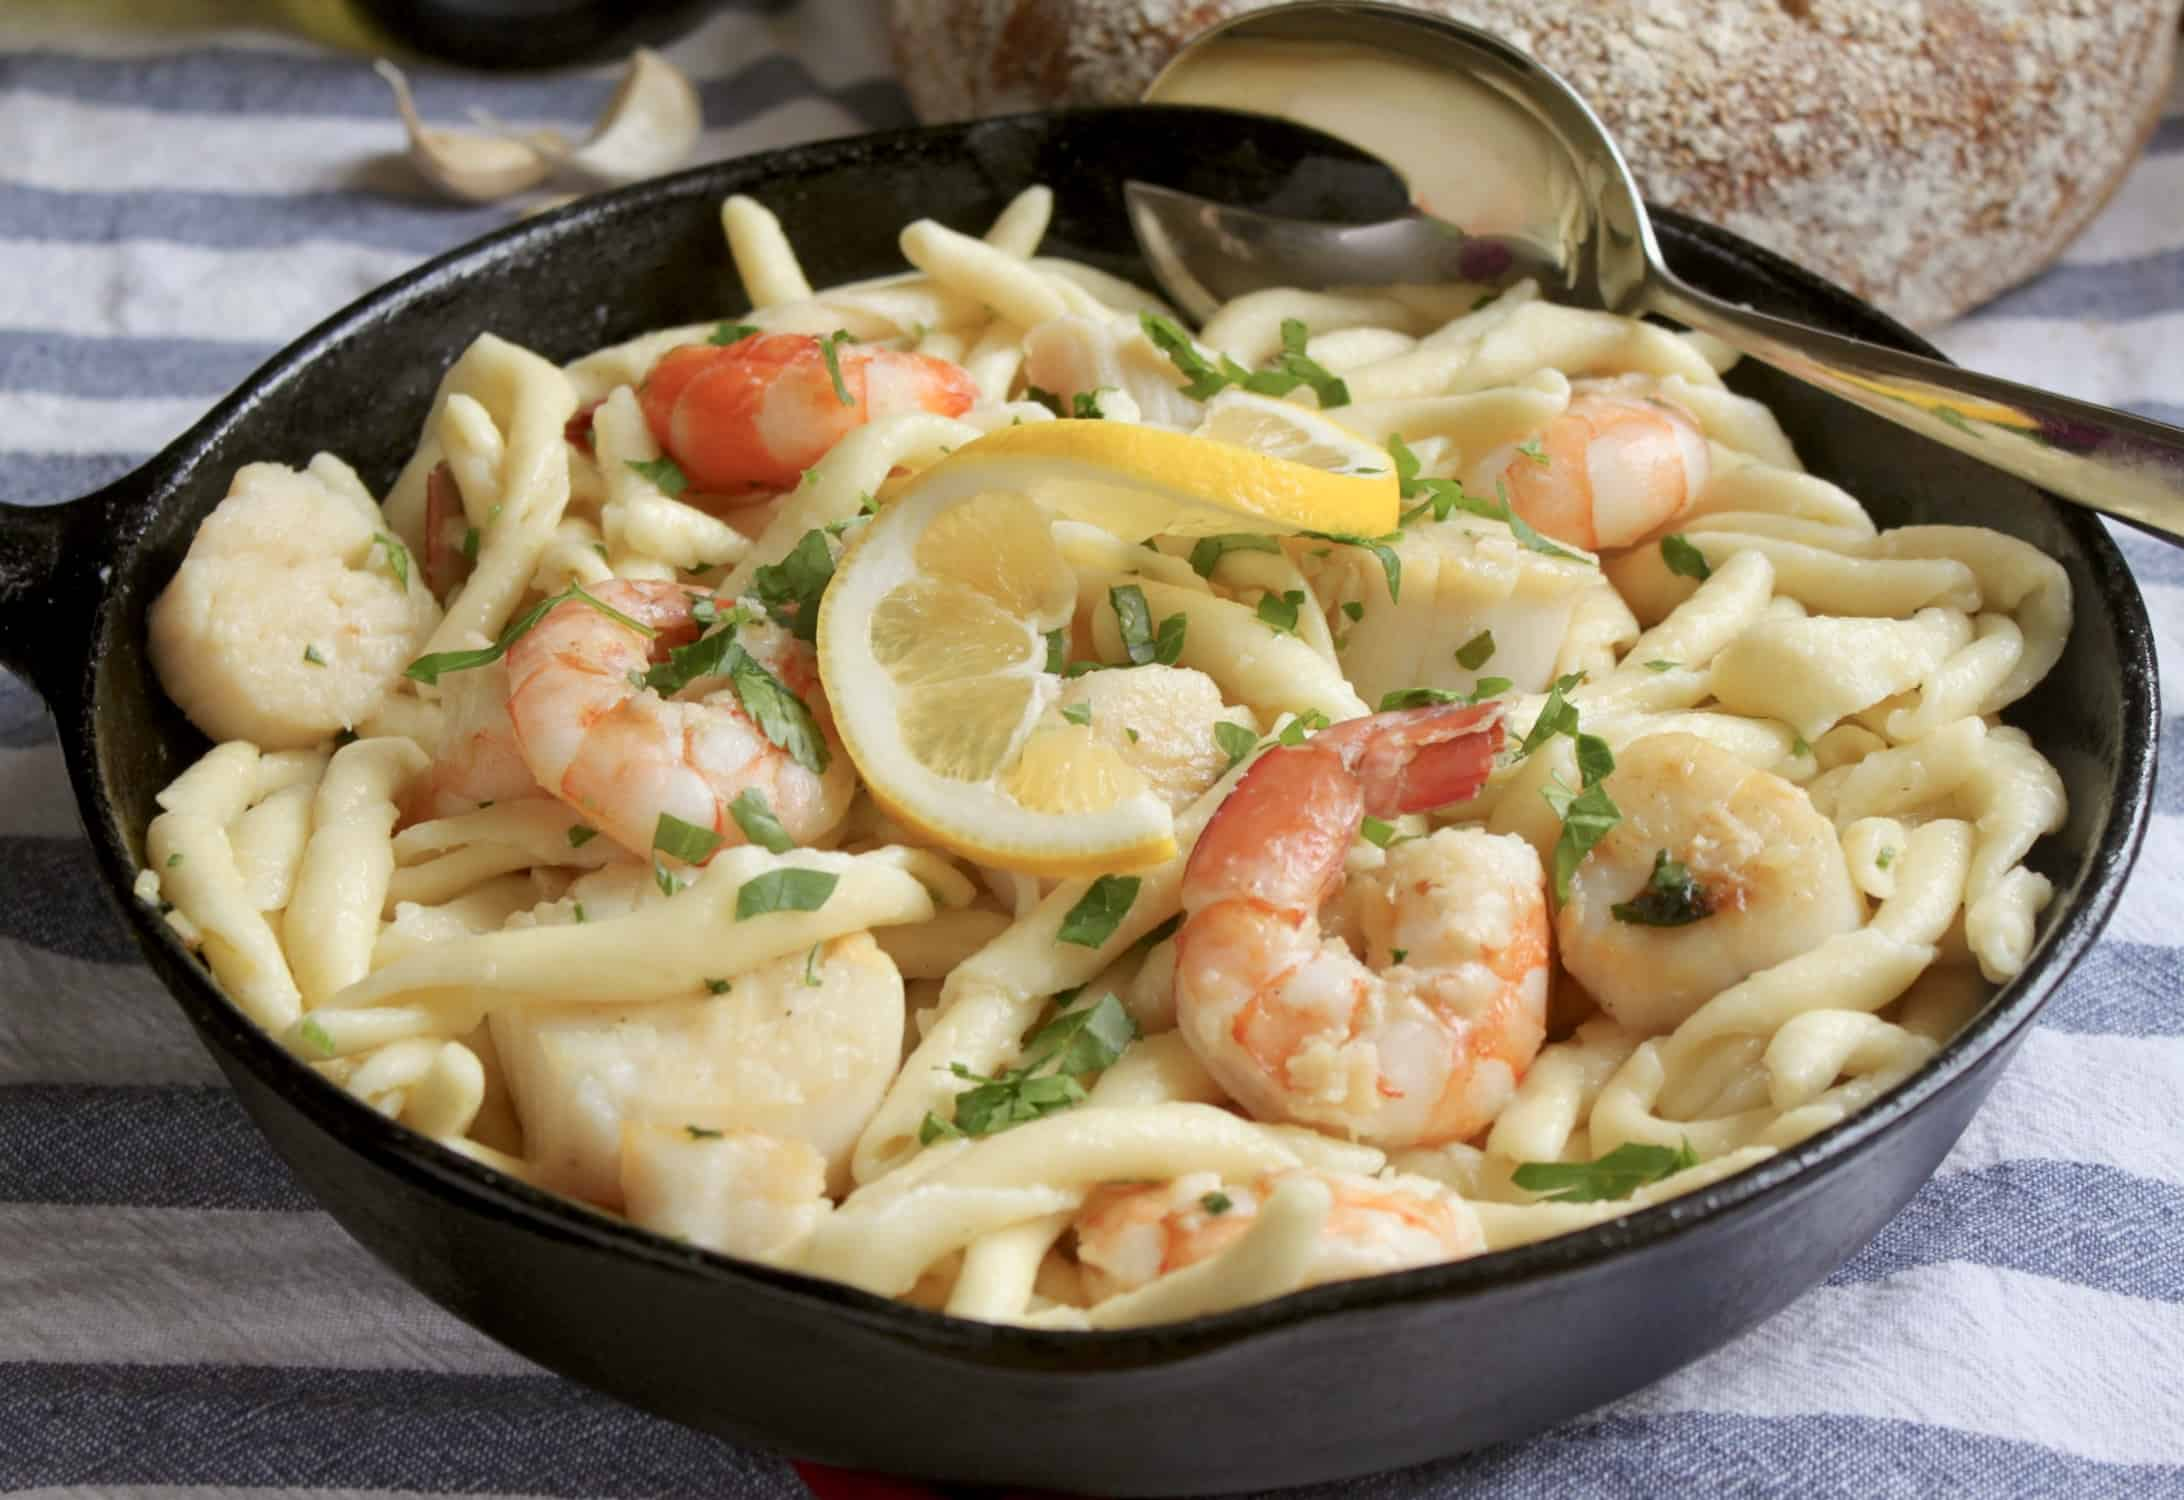 seafood pasta in a cast iron pan